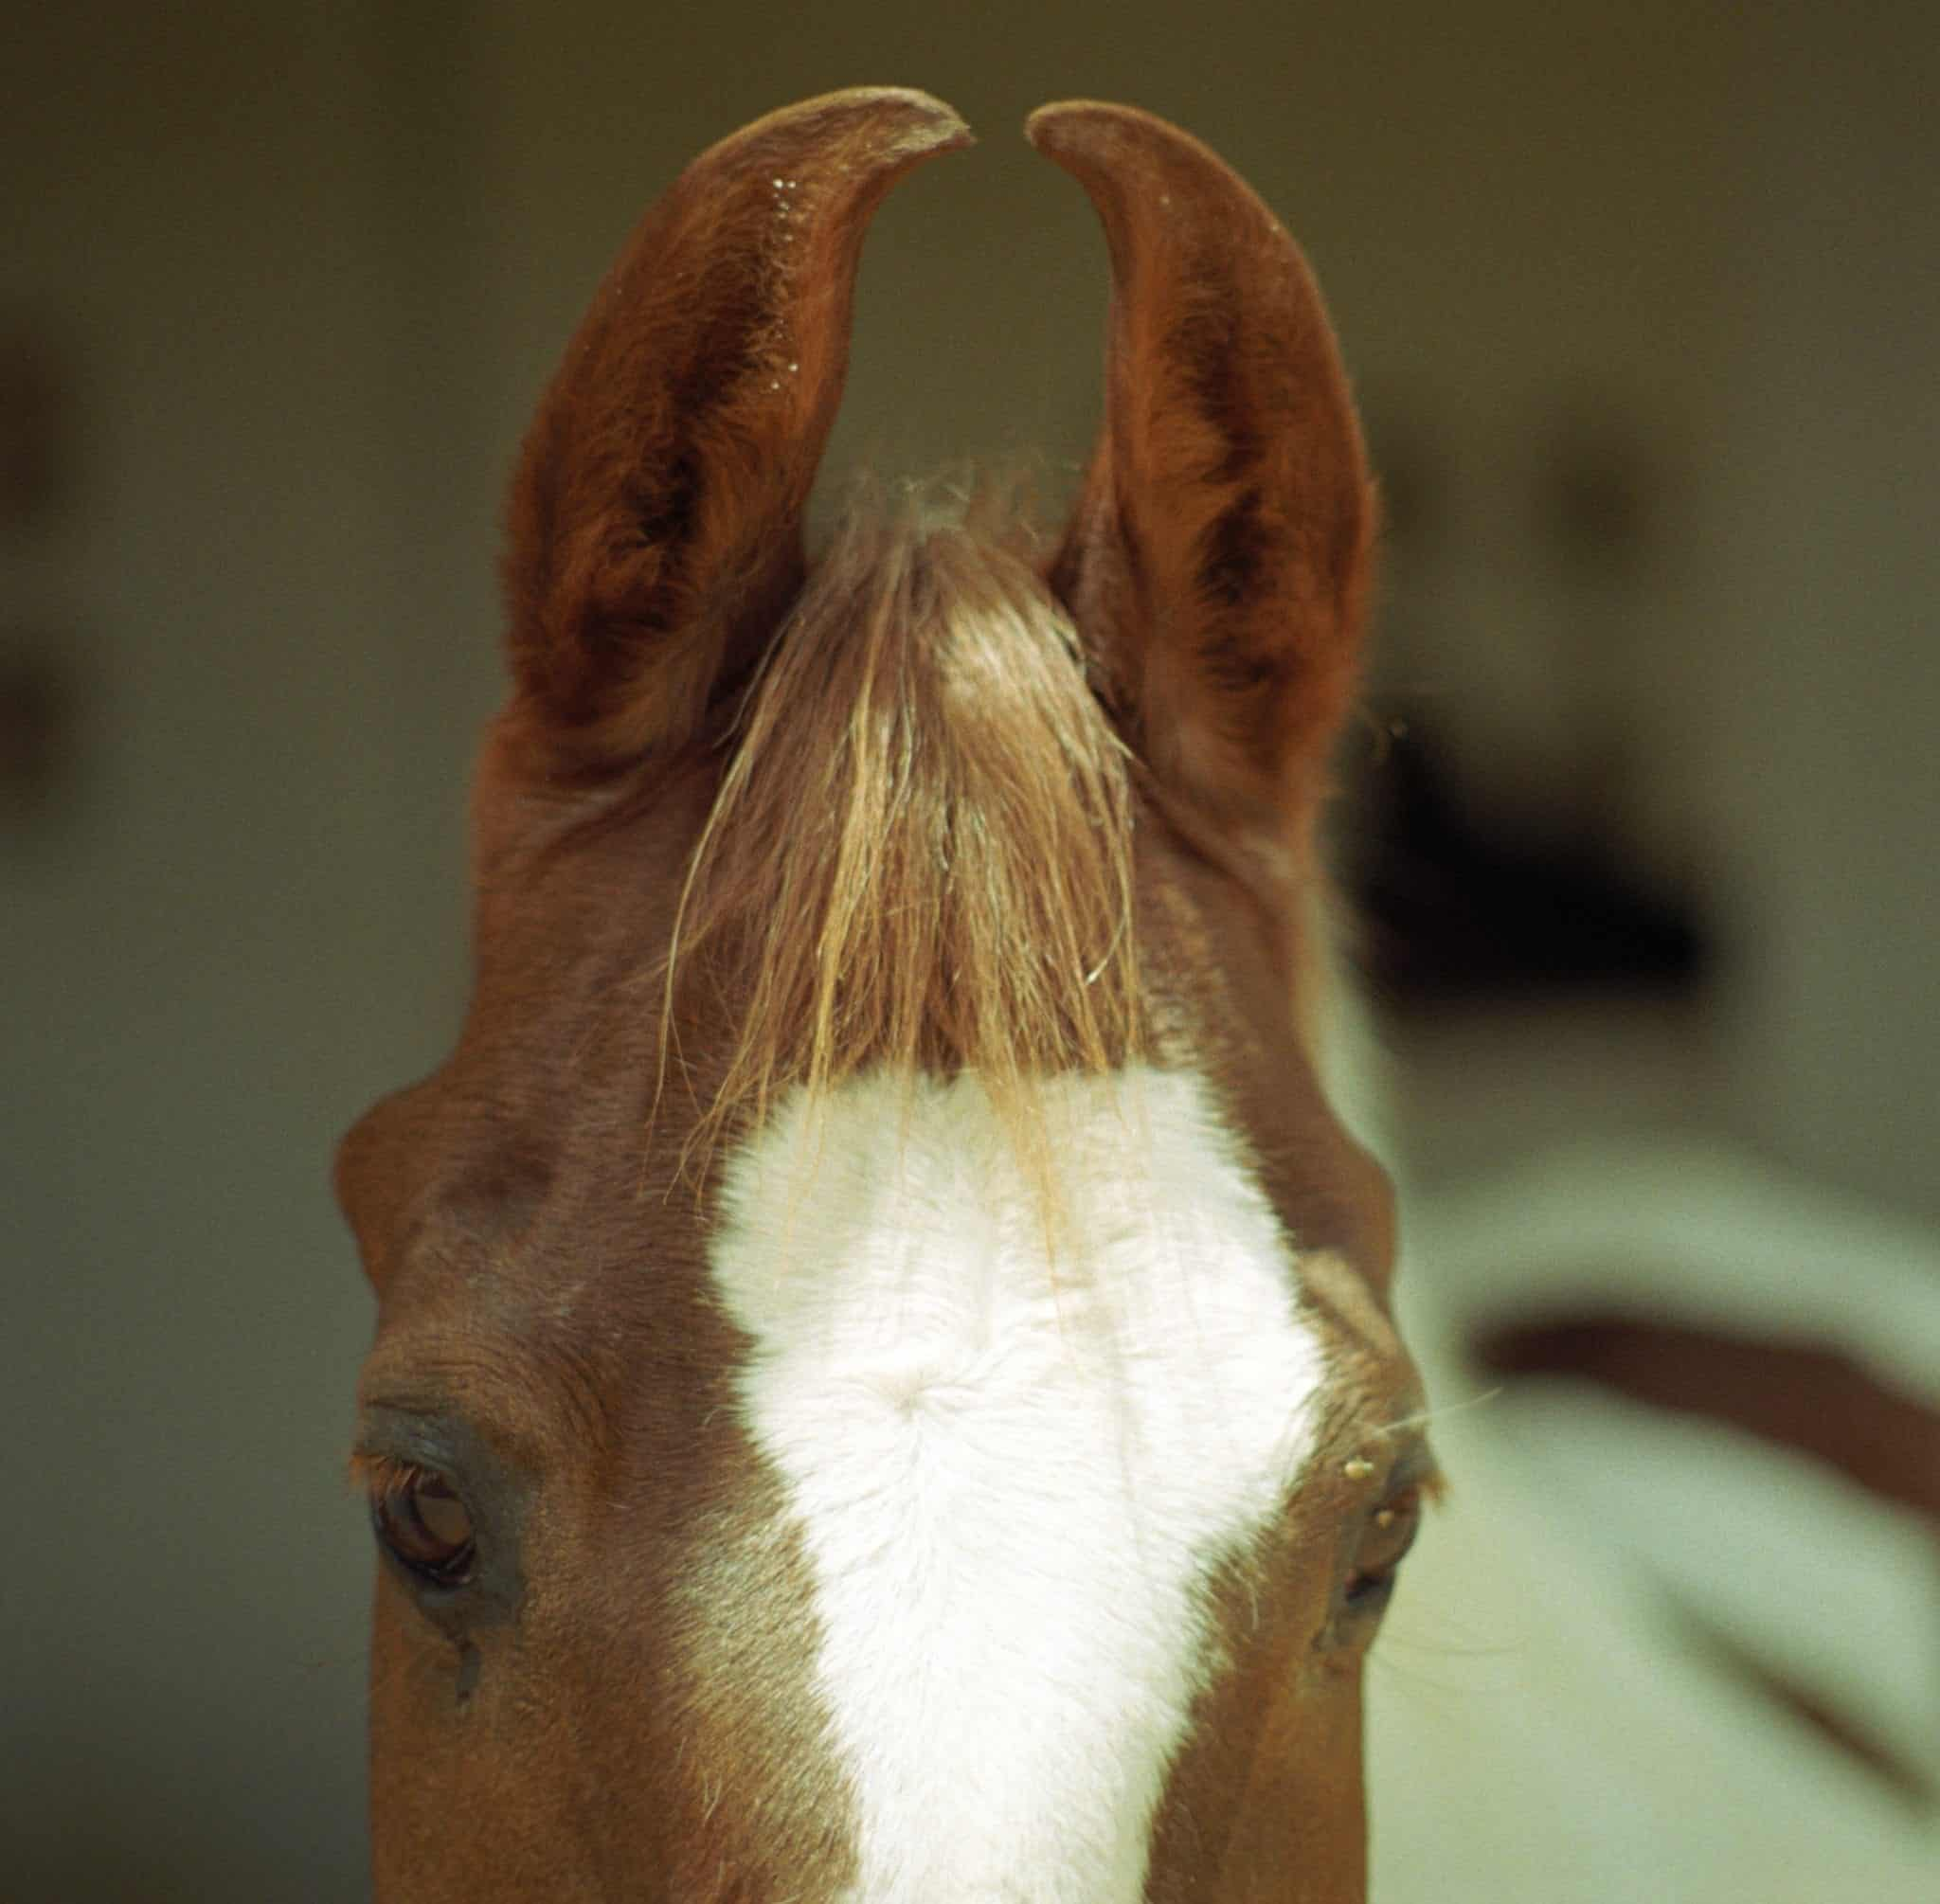 Meet The Marwari Horse A Rare Breed Known For Their Curly Ears